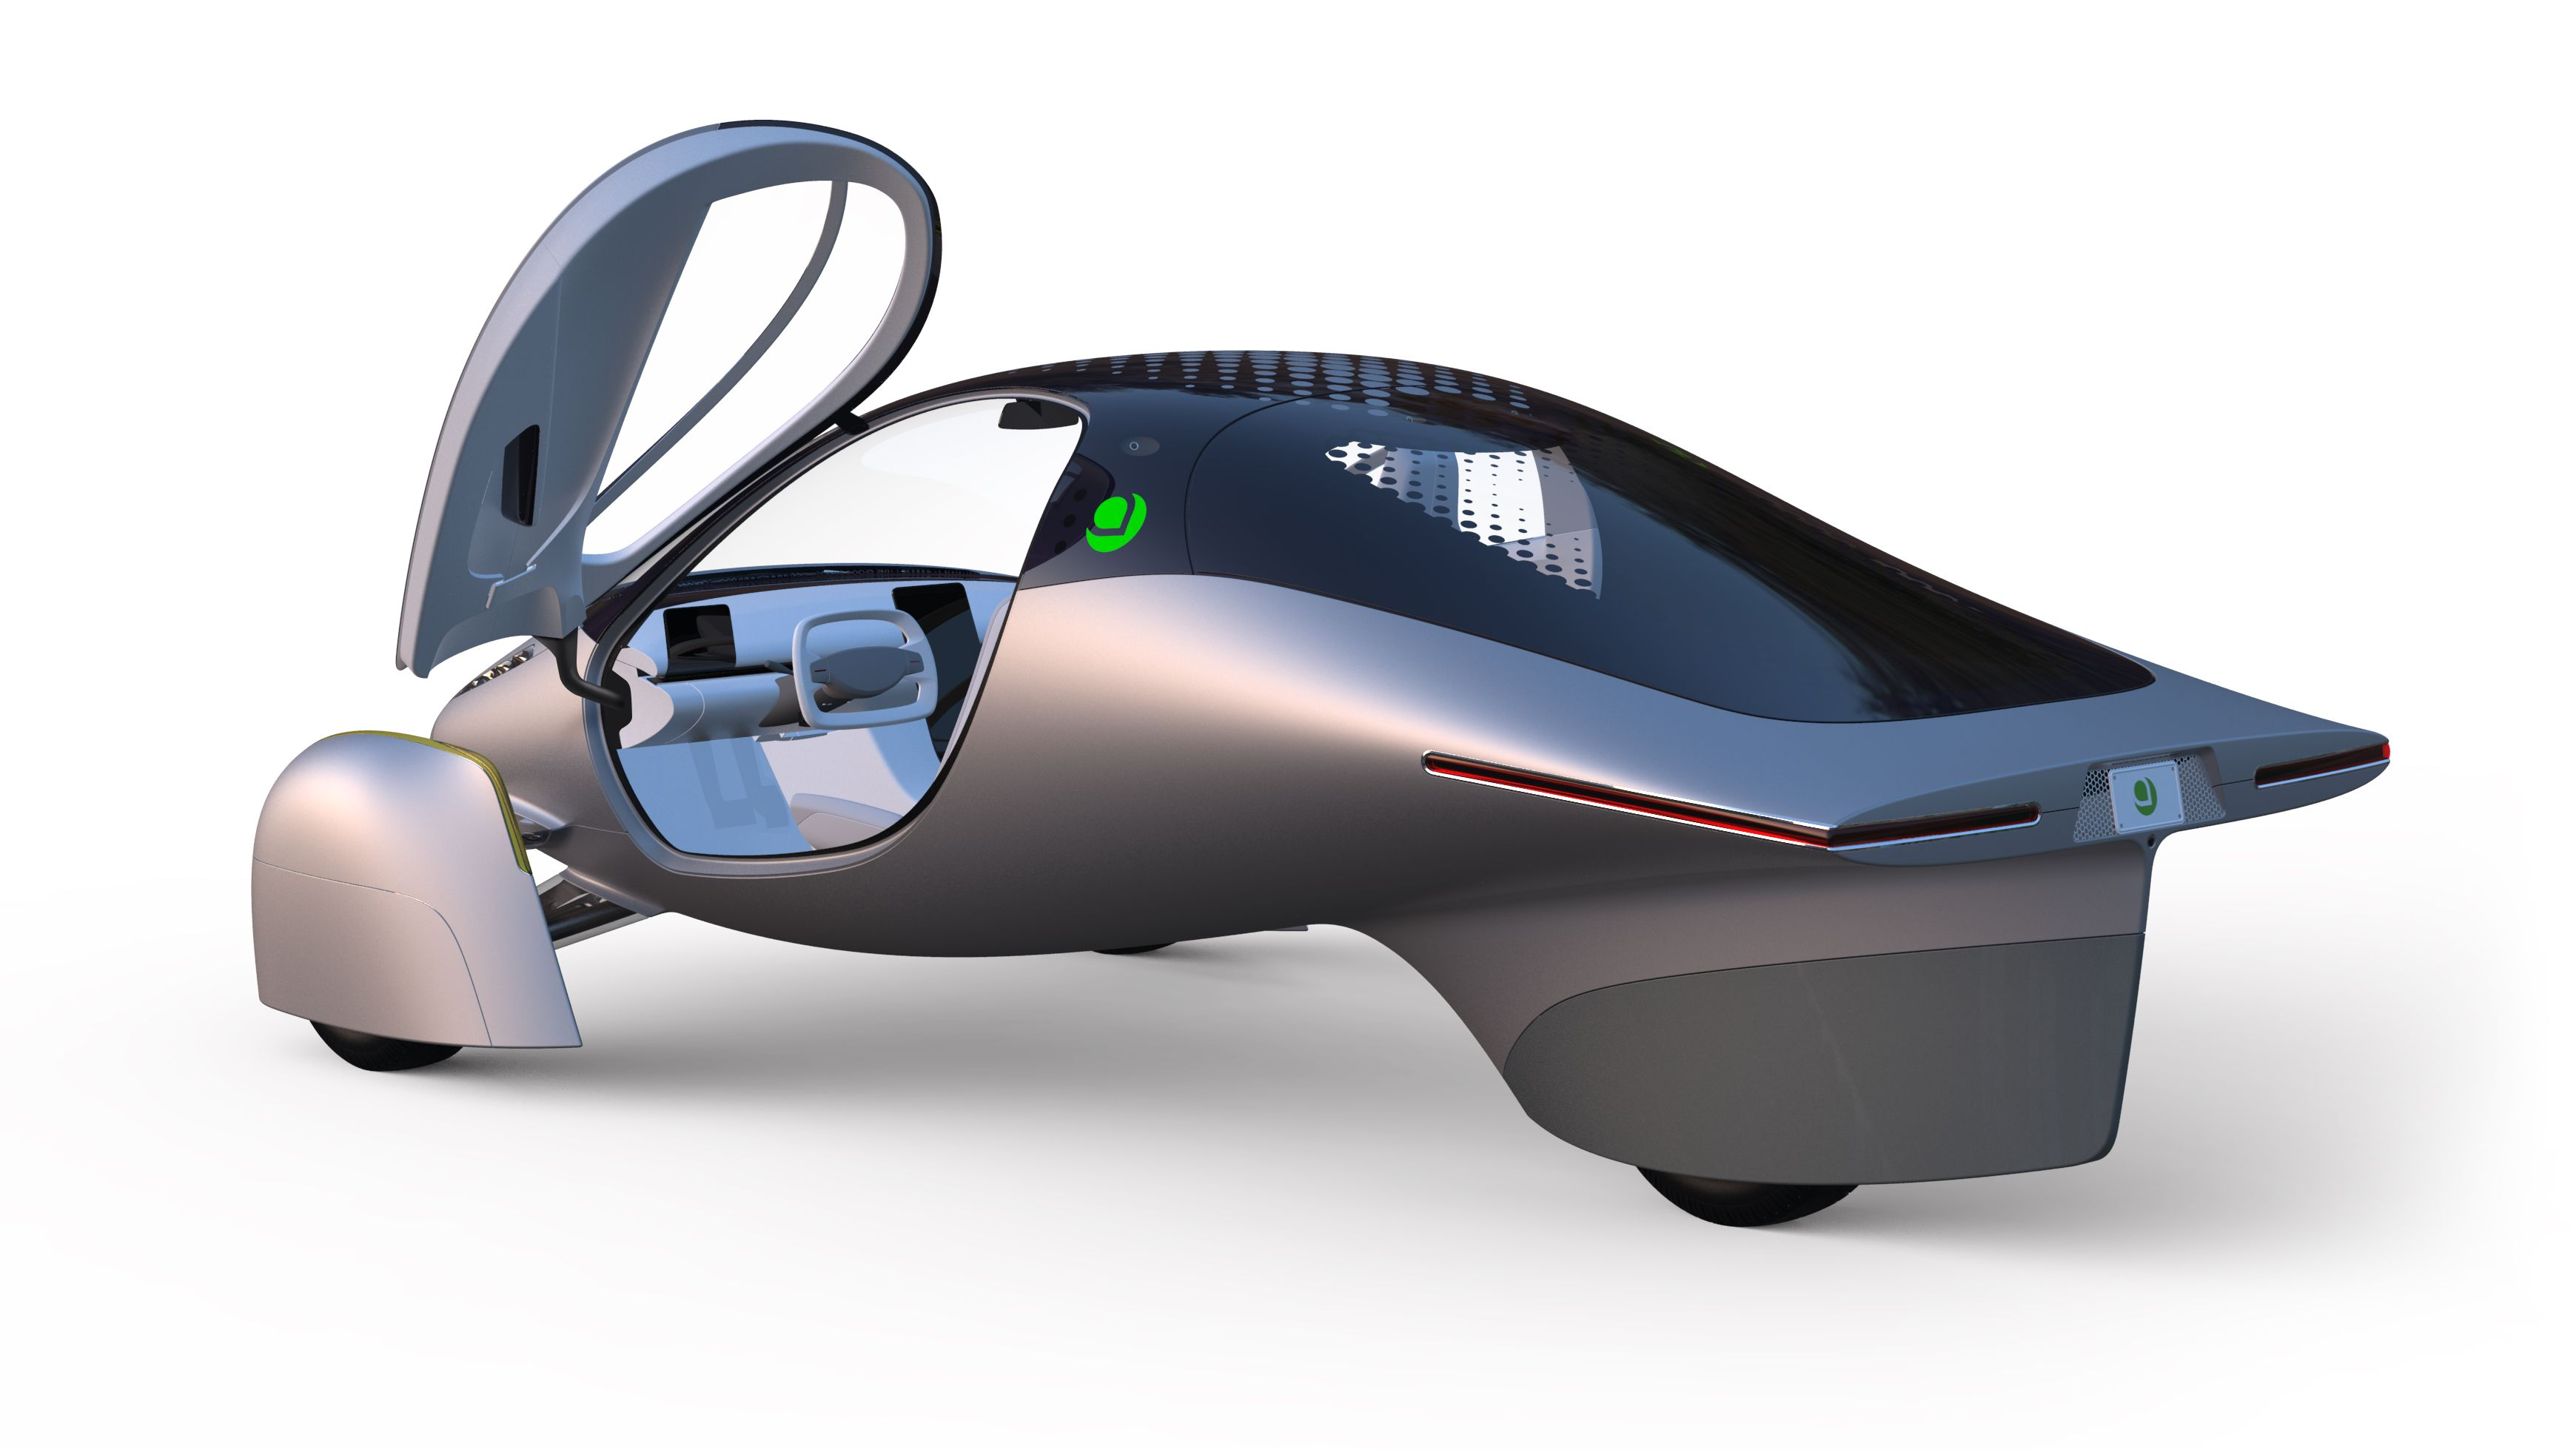 Aptera Claims Three-Wheel EV Can Run on Solar Only with No Plugging In